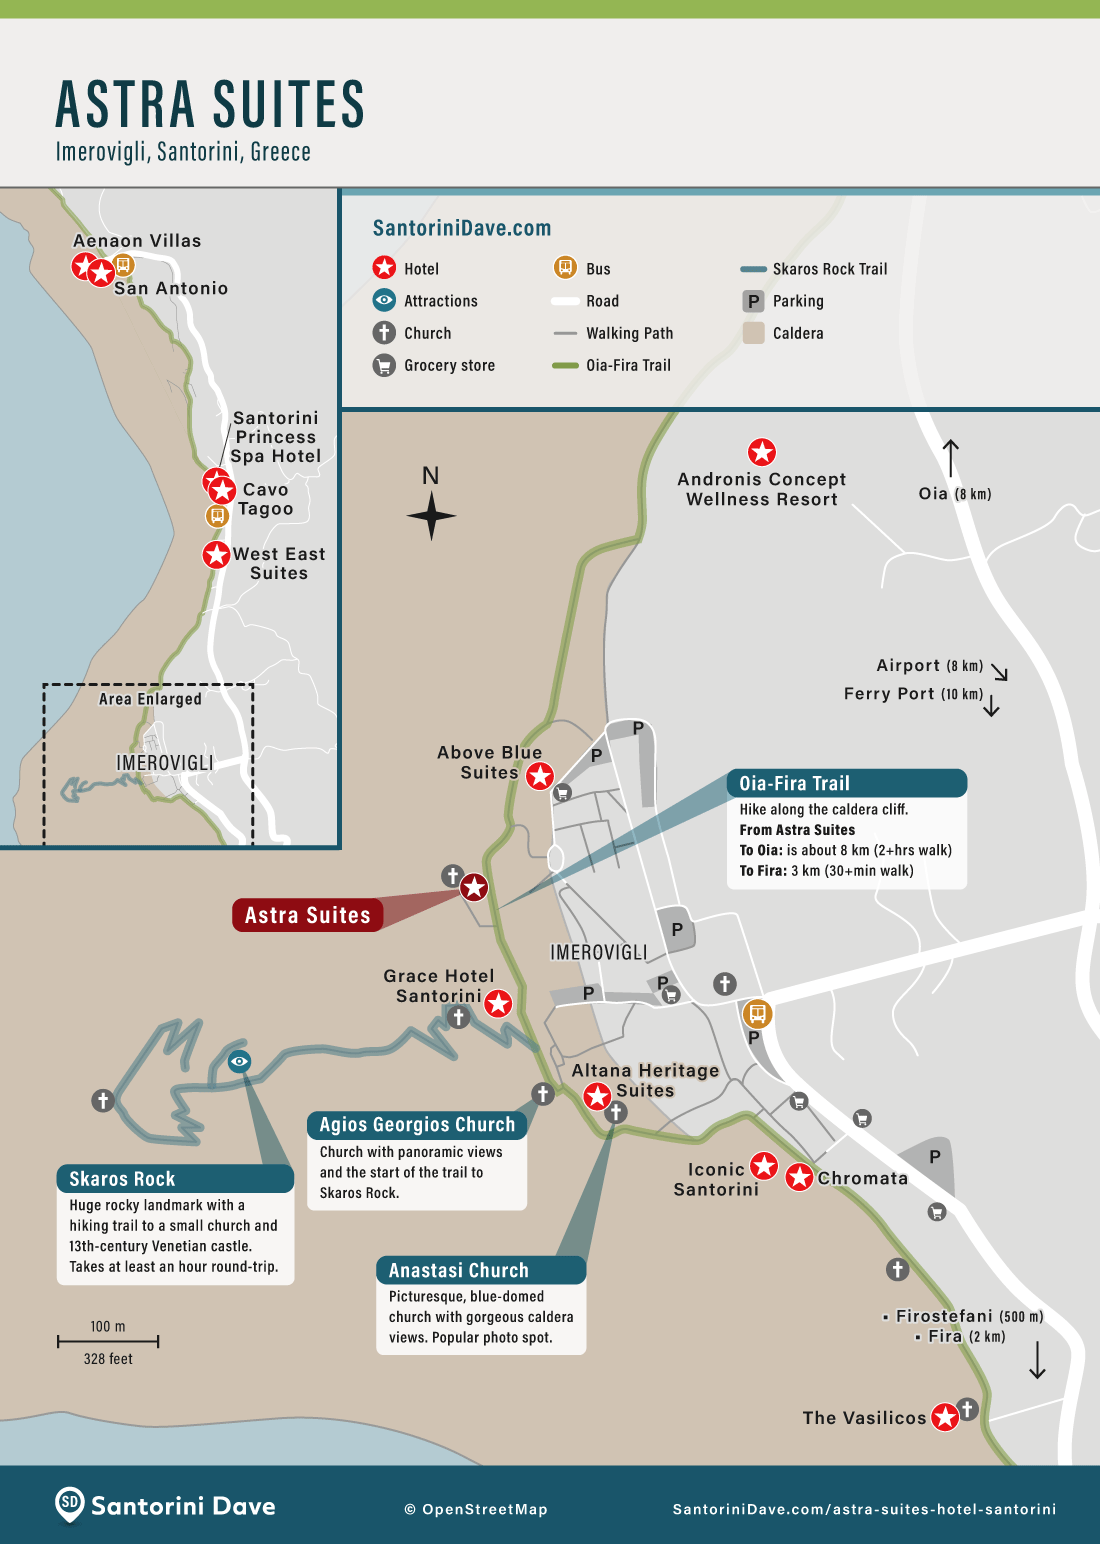 Map of Astra Suites Hotel in Imerovigli.